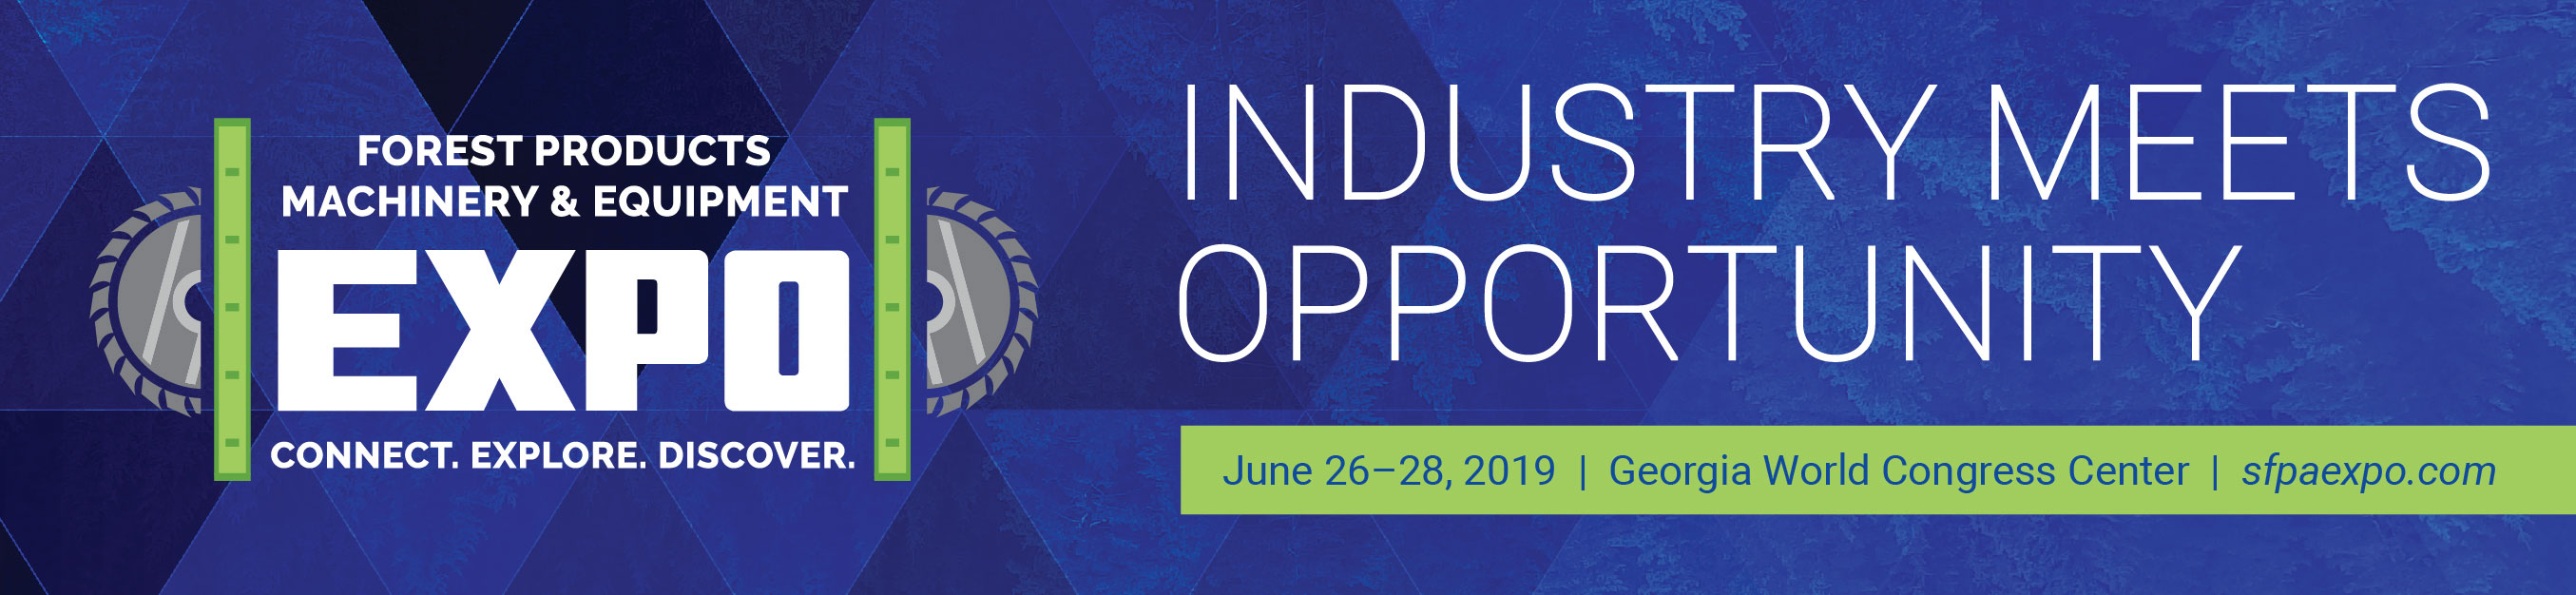 Forest Products Machinery & Equipment Expo – June 26-29, 2019